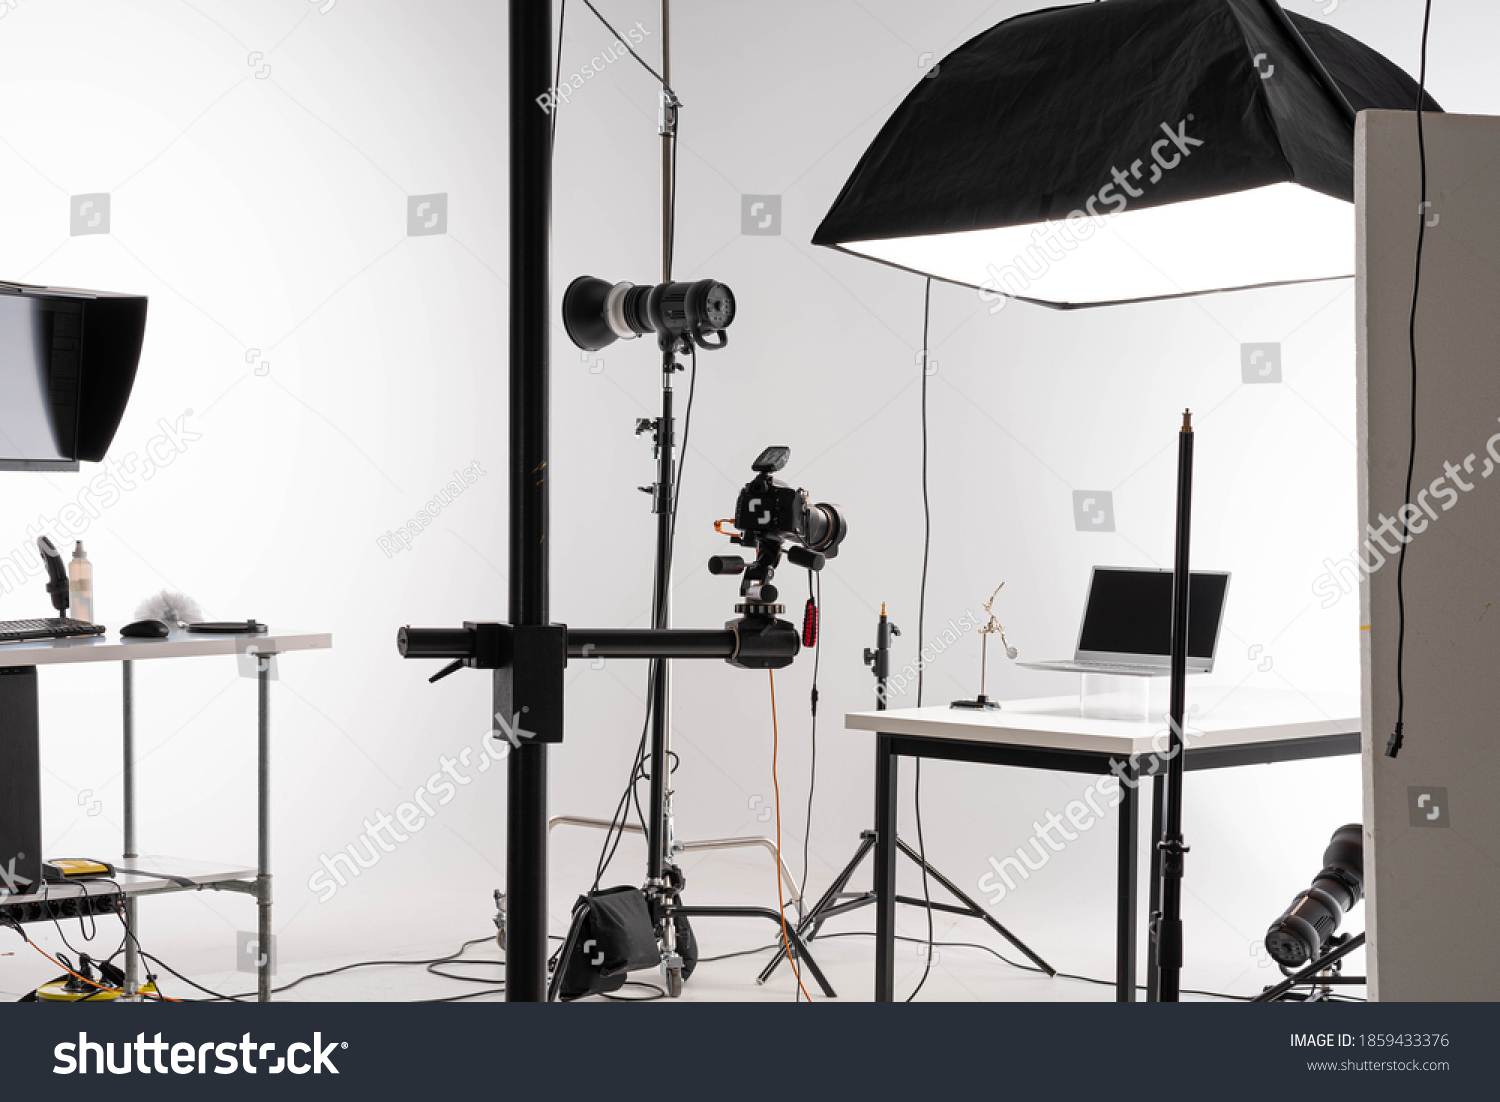 scene of Product photography session in professional photostudio #1859433376